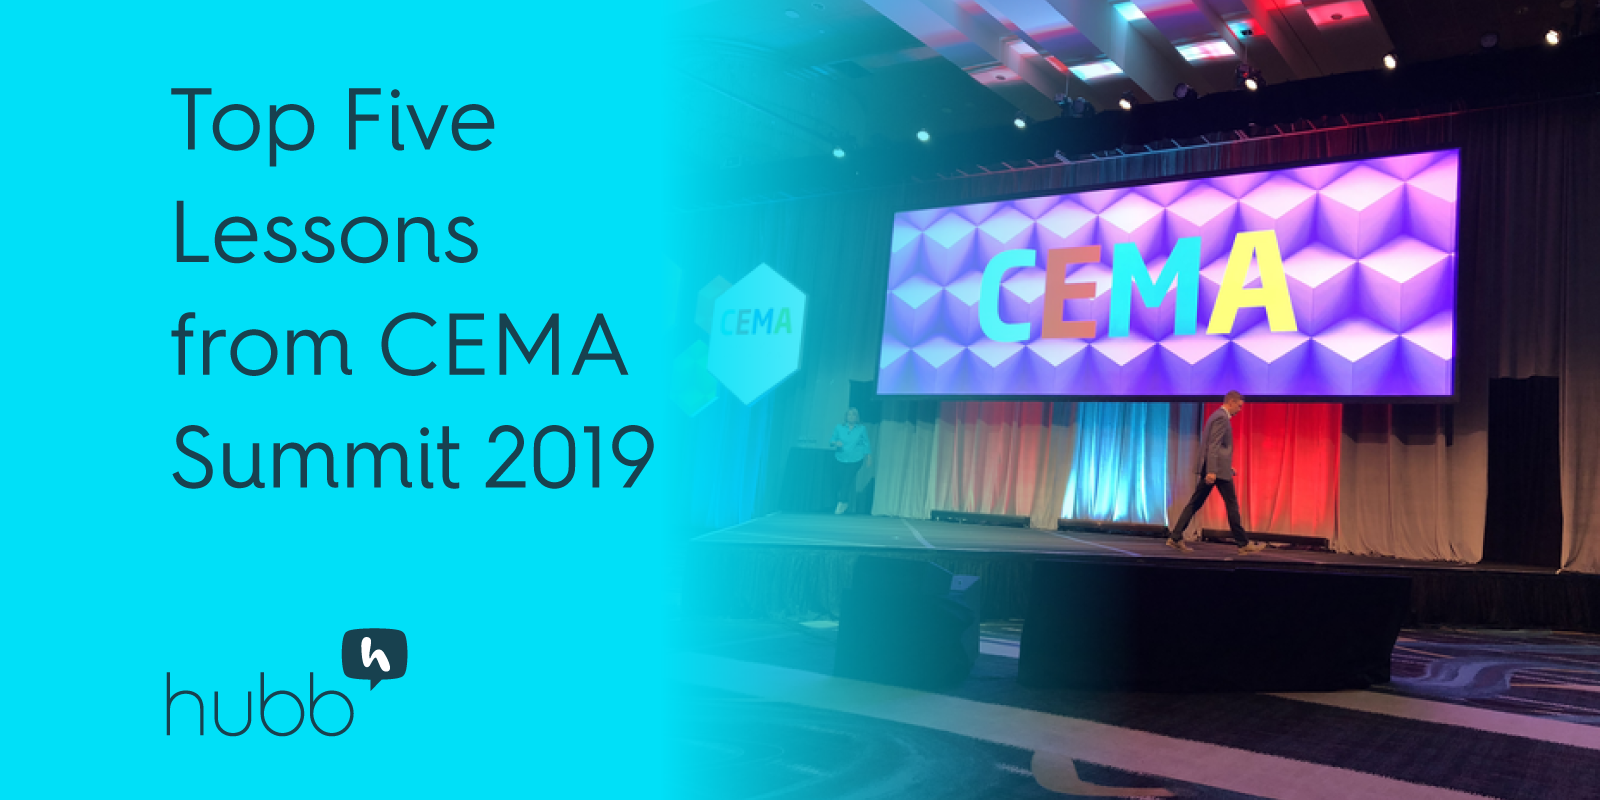 Top Five Lessons from CEMA Summit 2019